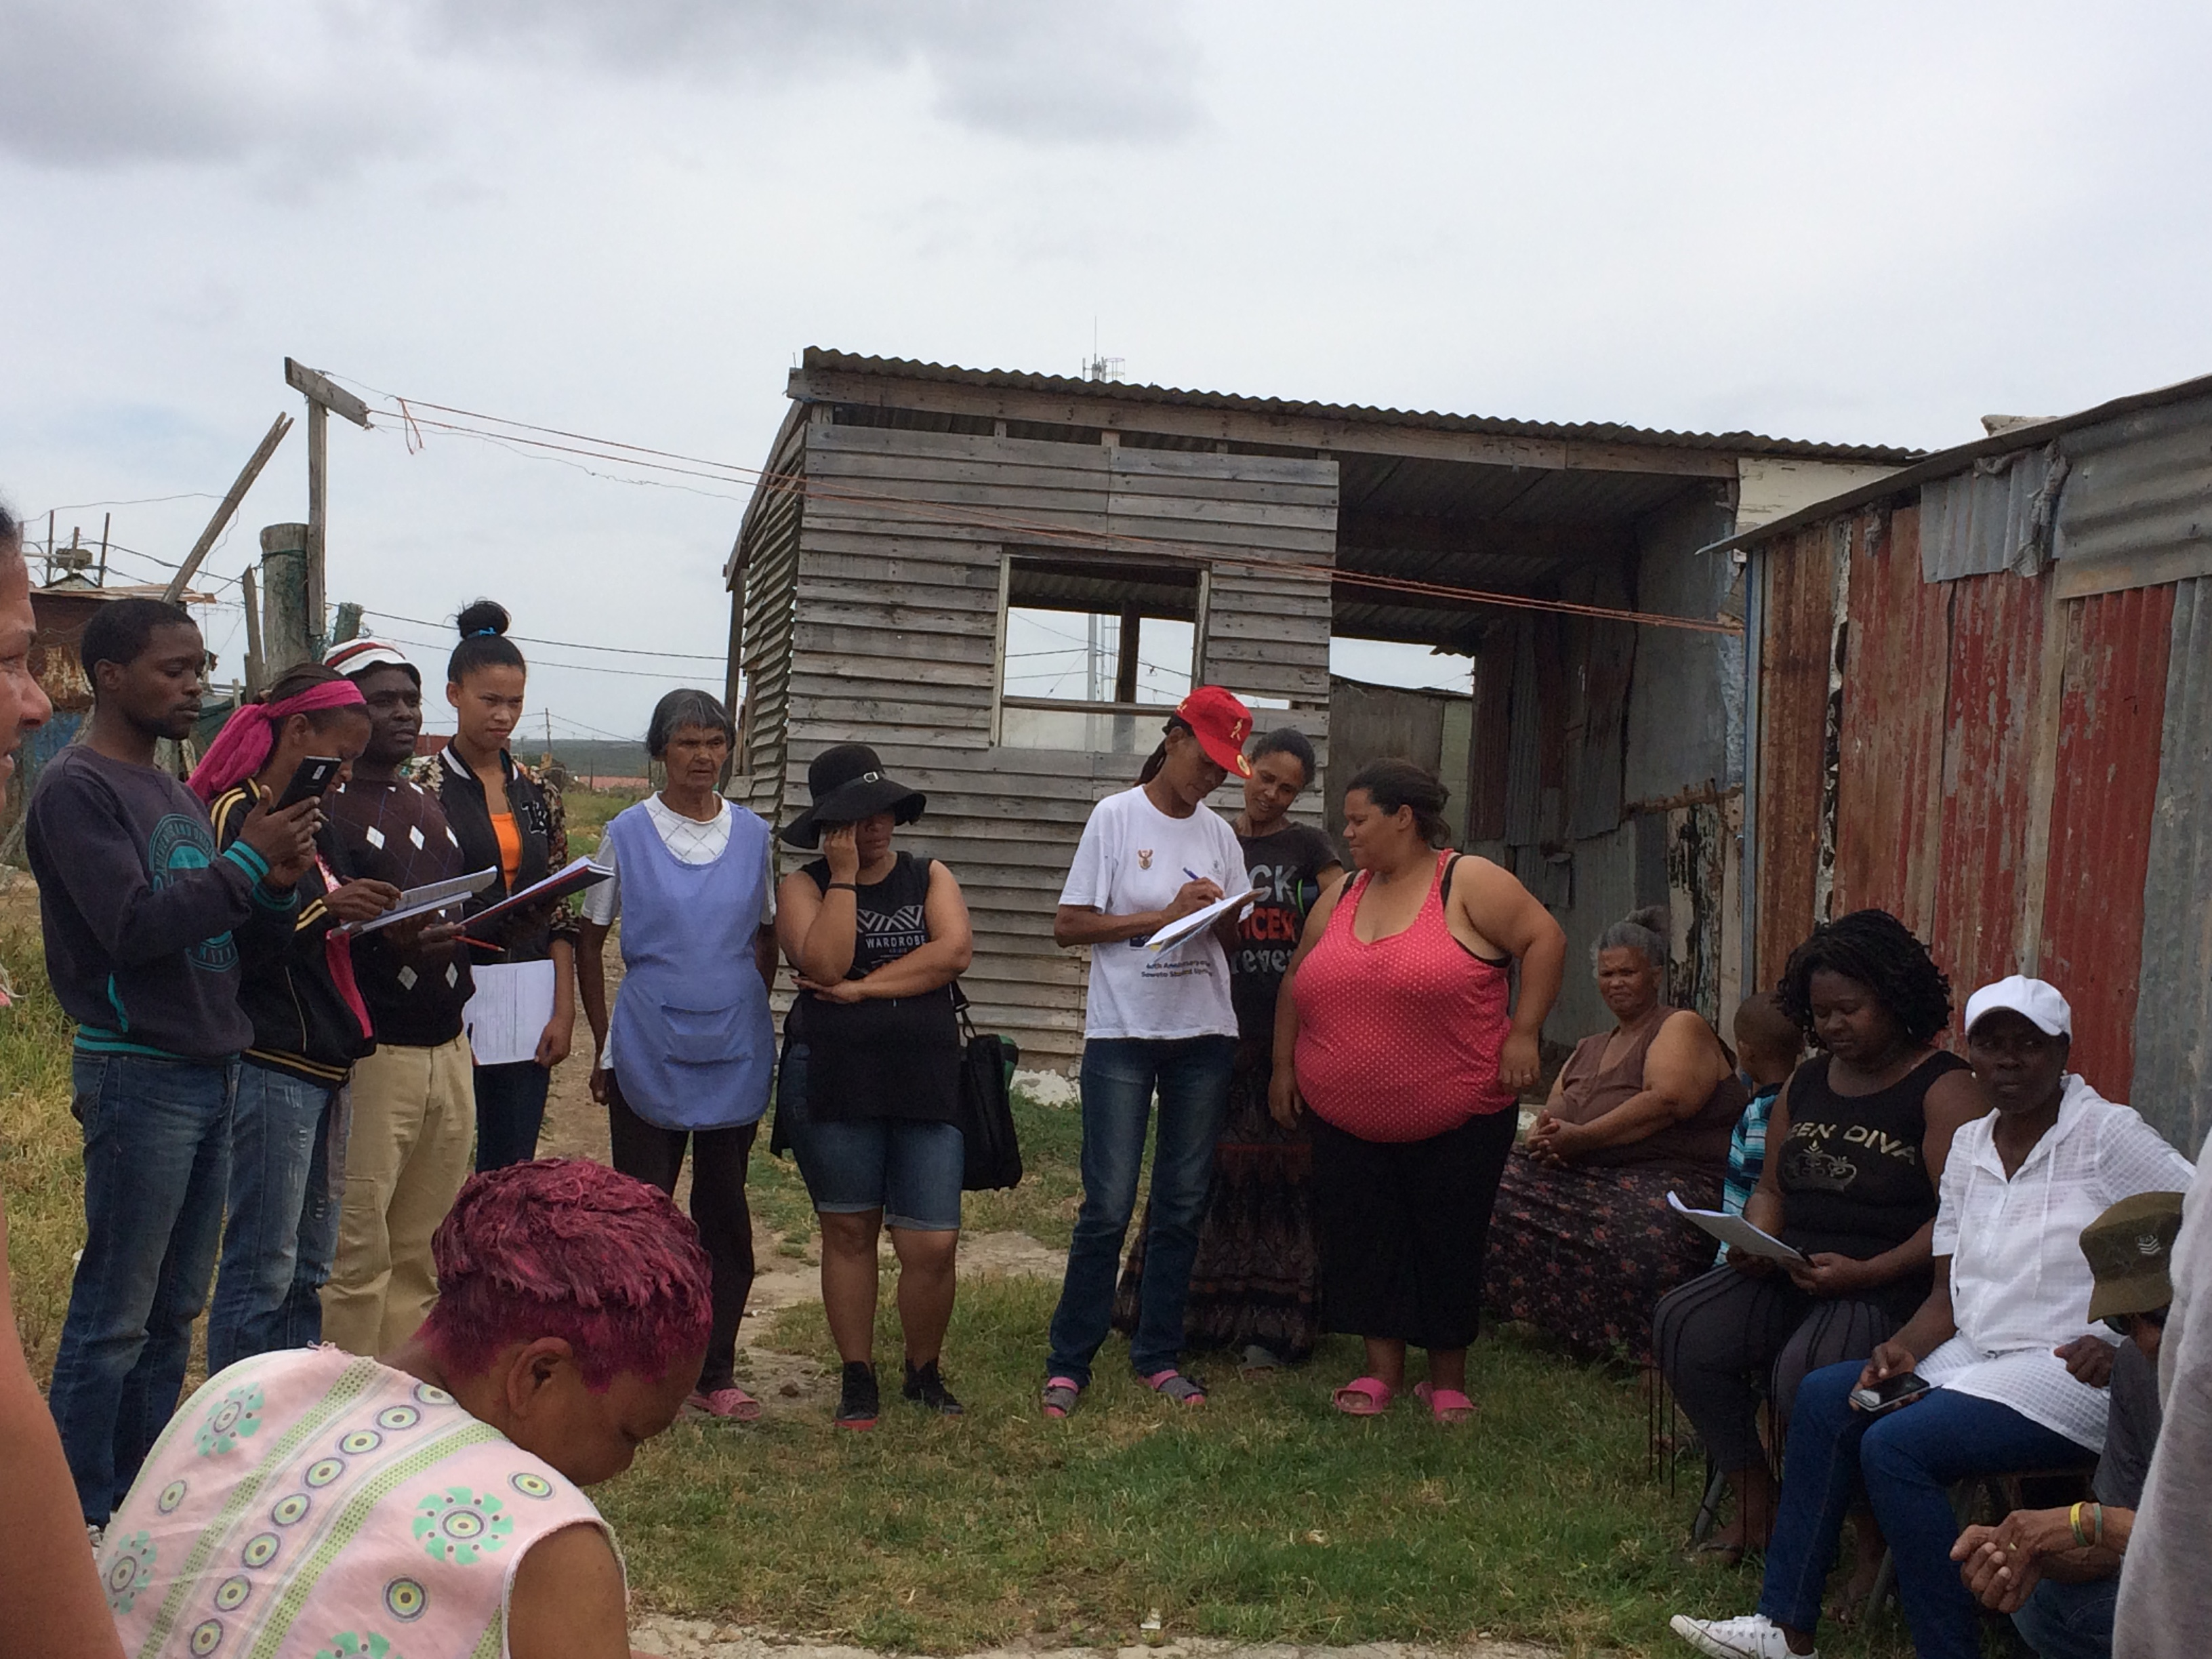 Profiling of informal settlements taking place in the Nelson Mandela Bay Metro